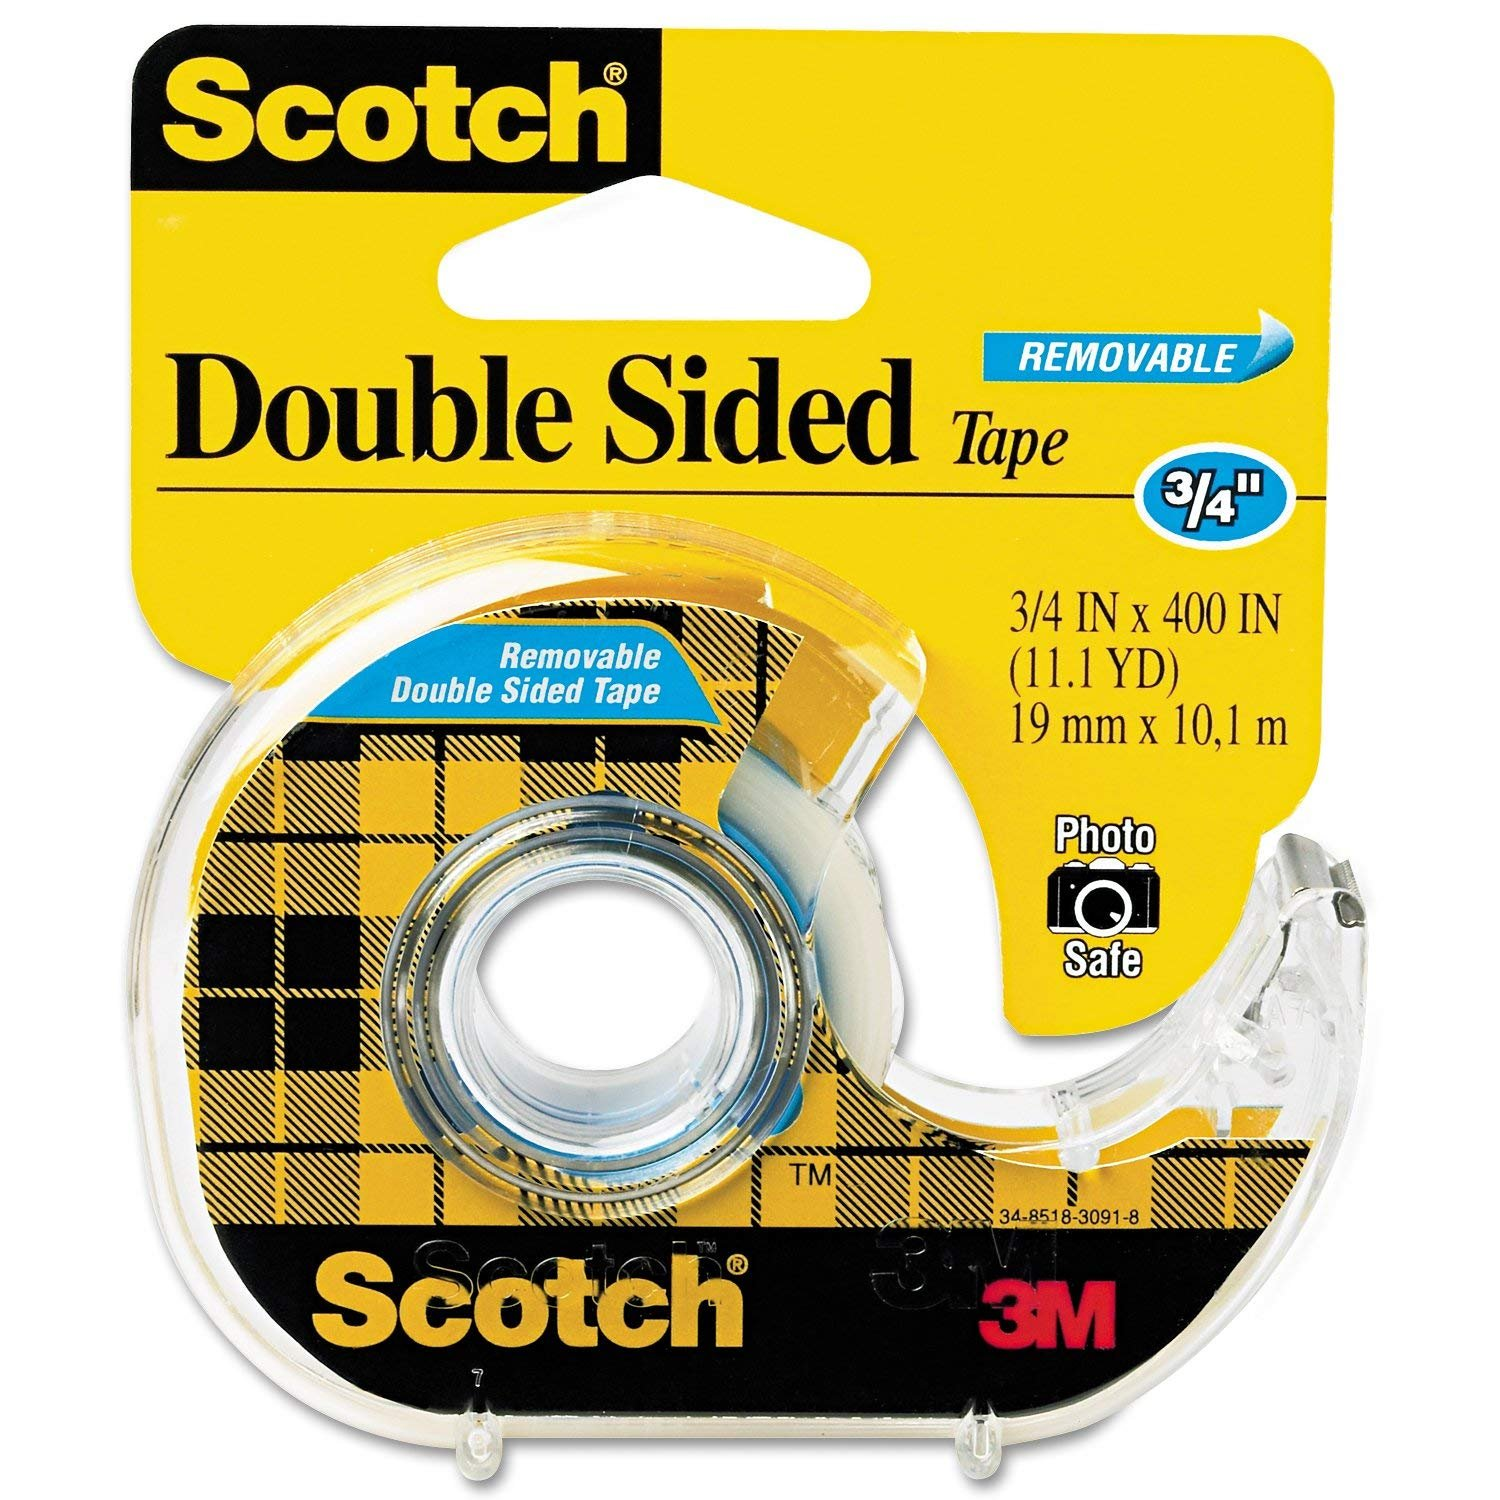 Scotch Removable DoubleSided Tape 3/4 inch x 400 inches Dispenser JH3W, 4-Pack